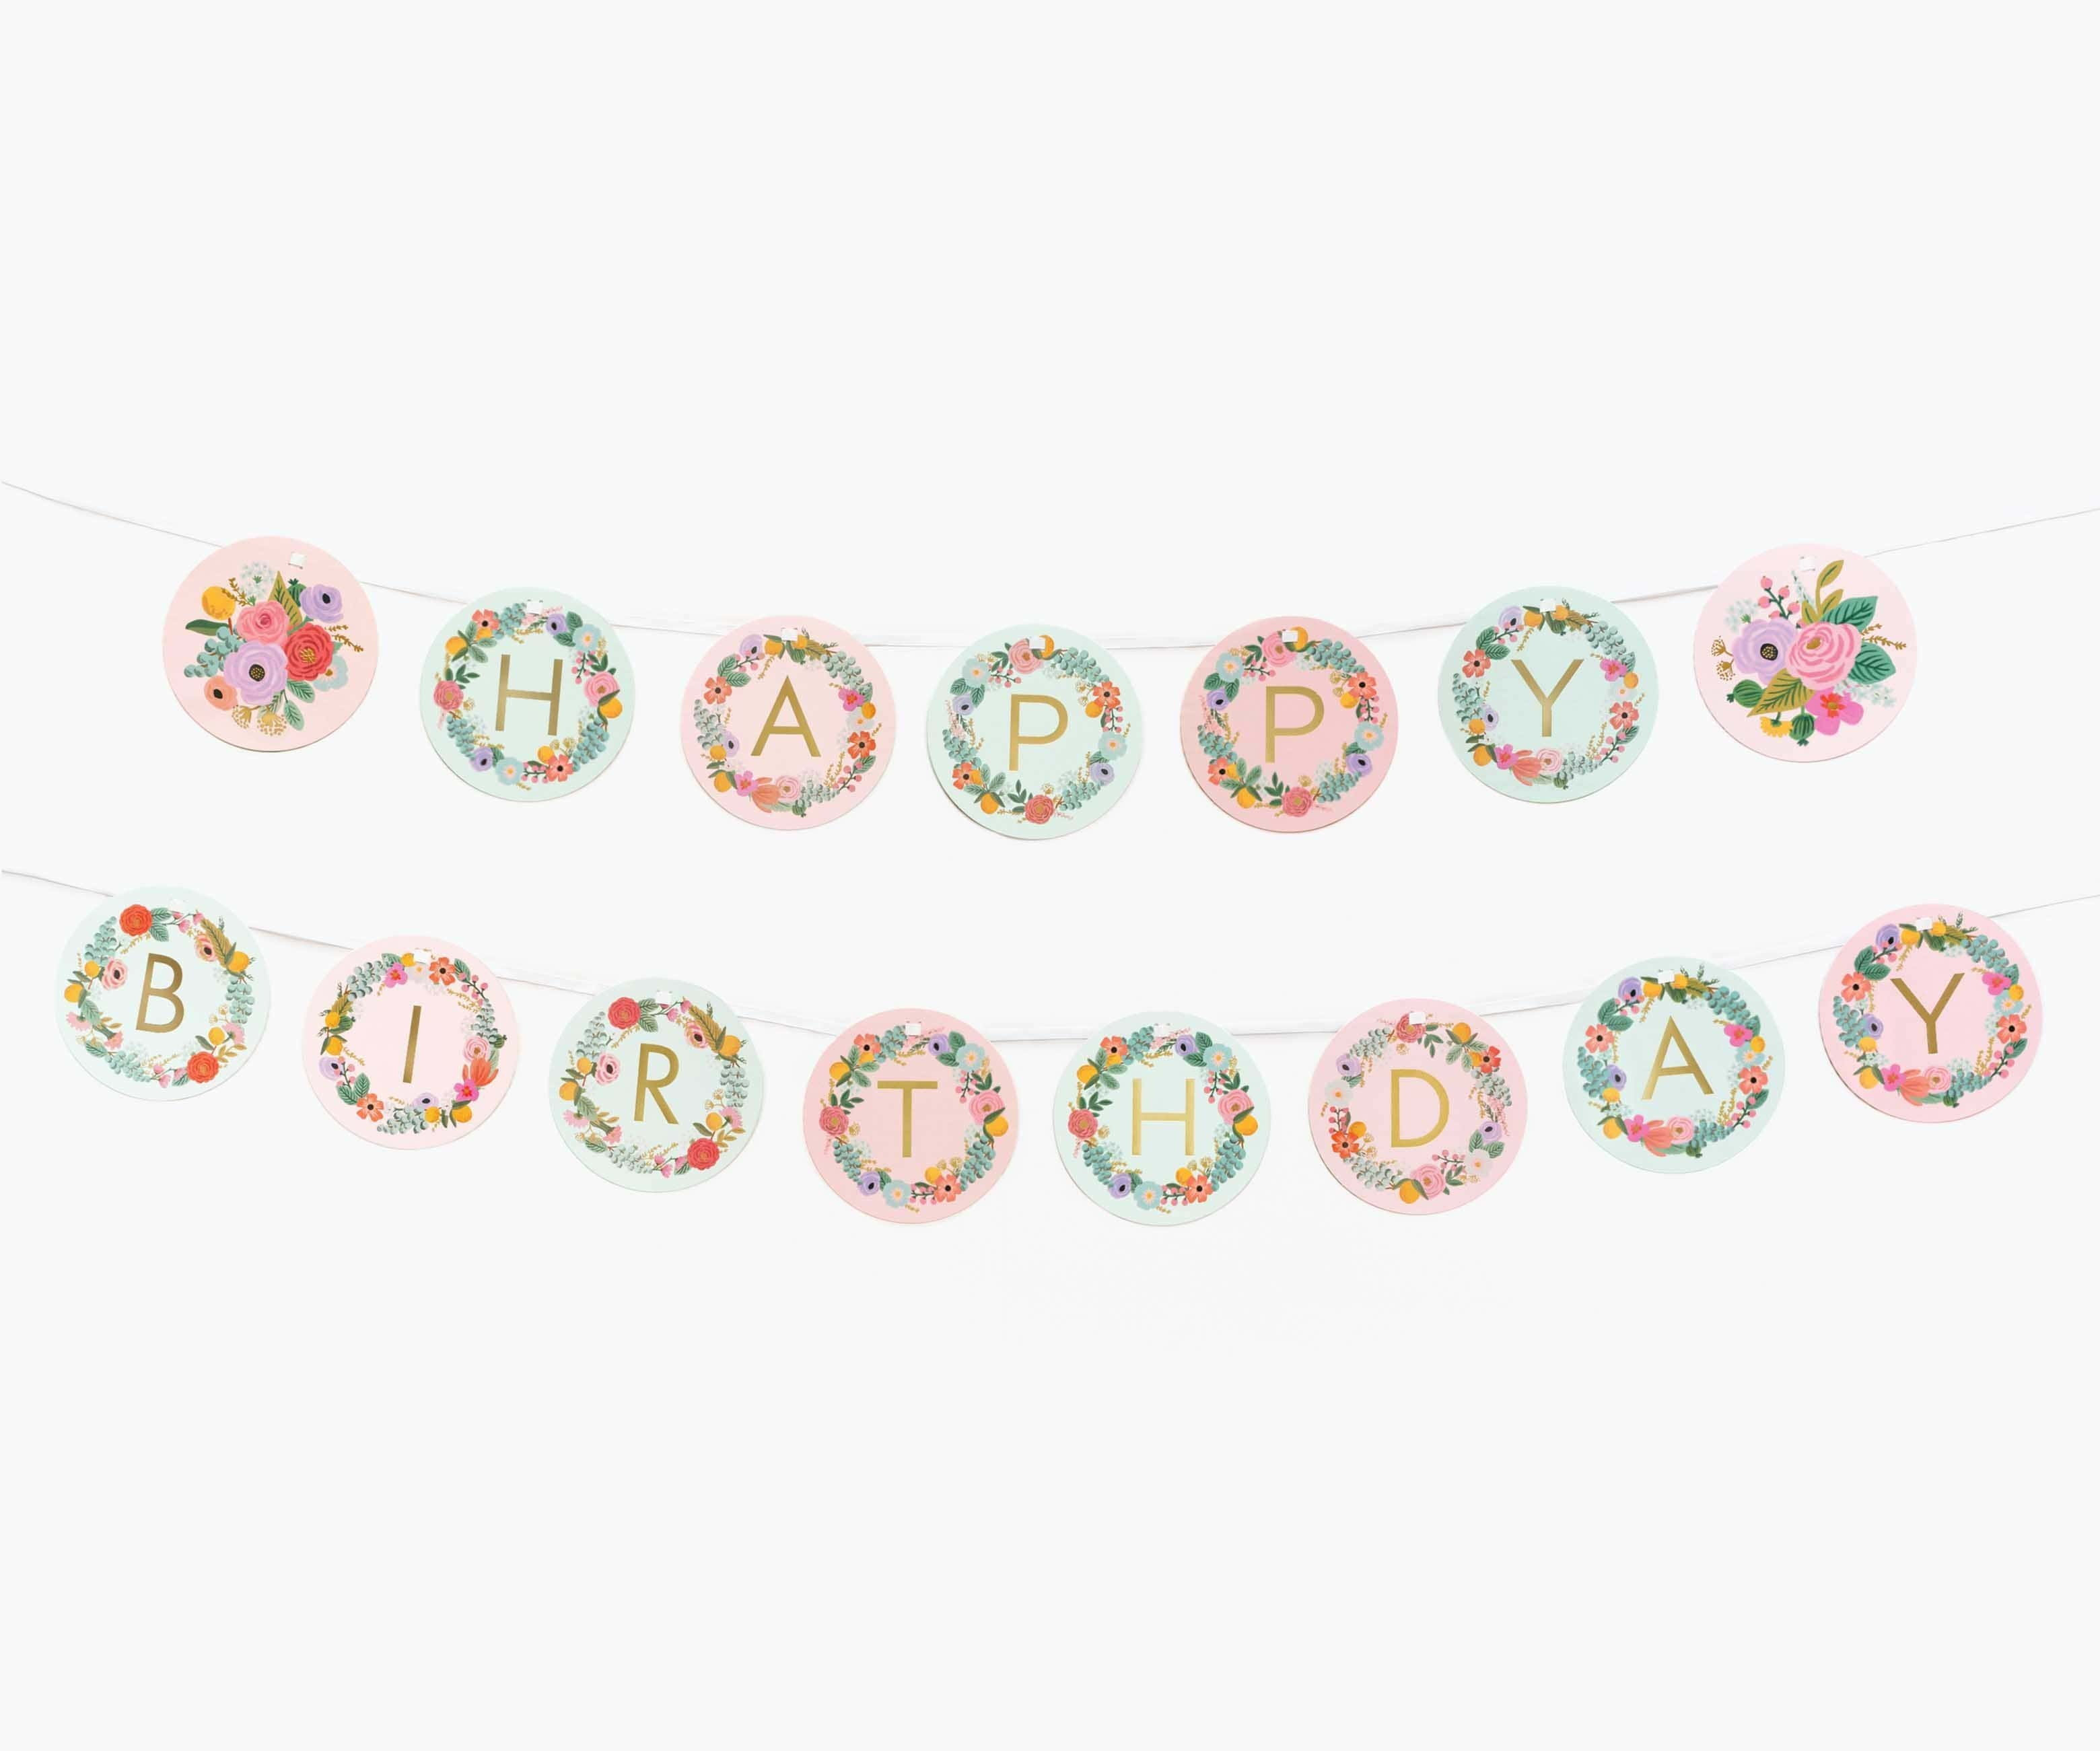 Garden Party Letter Garland Kit